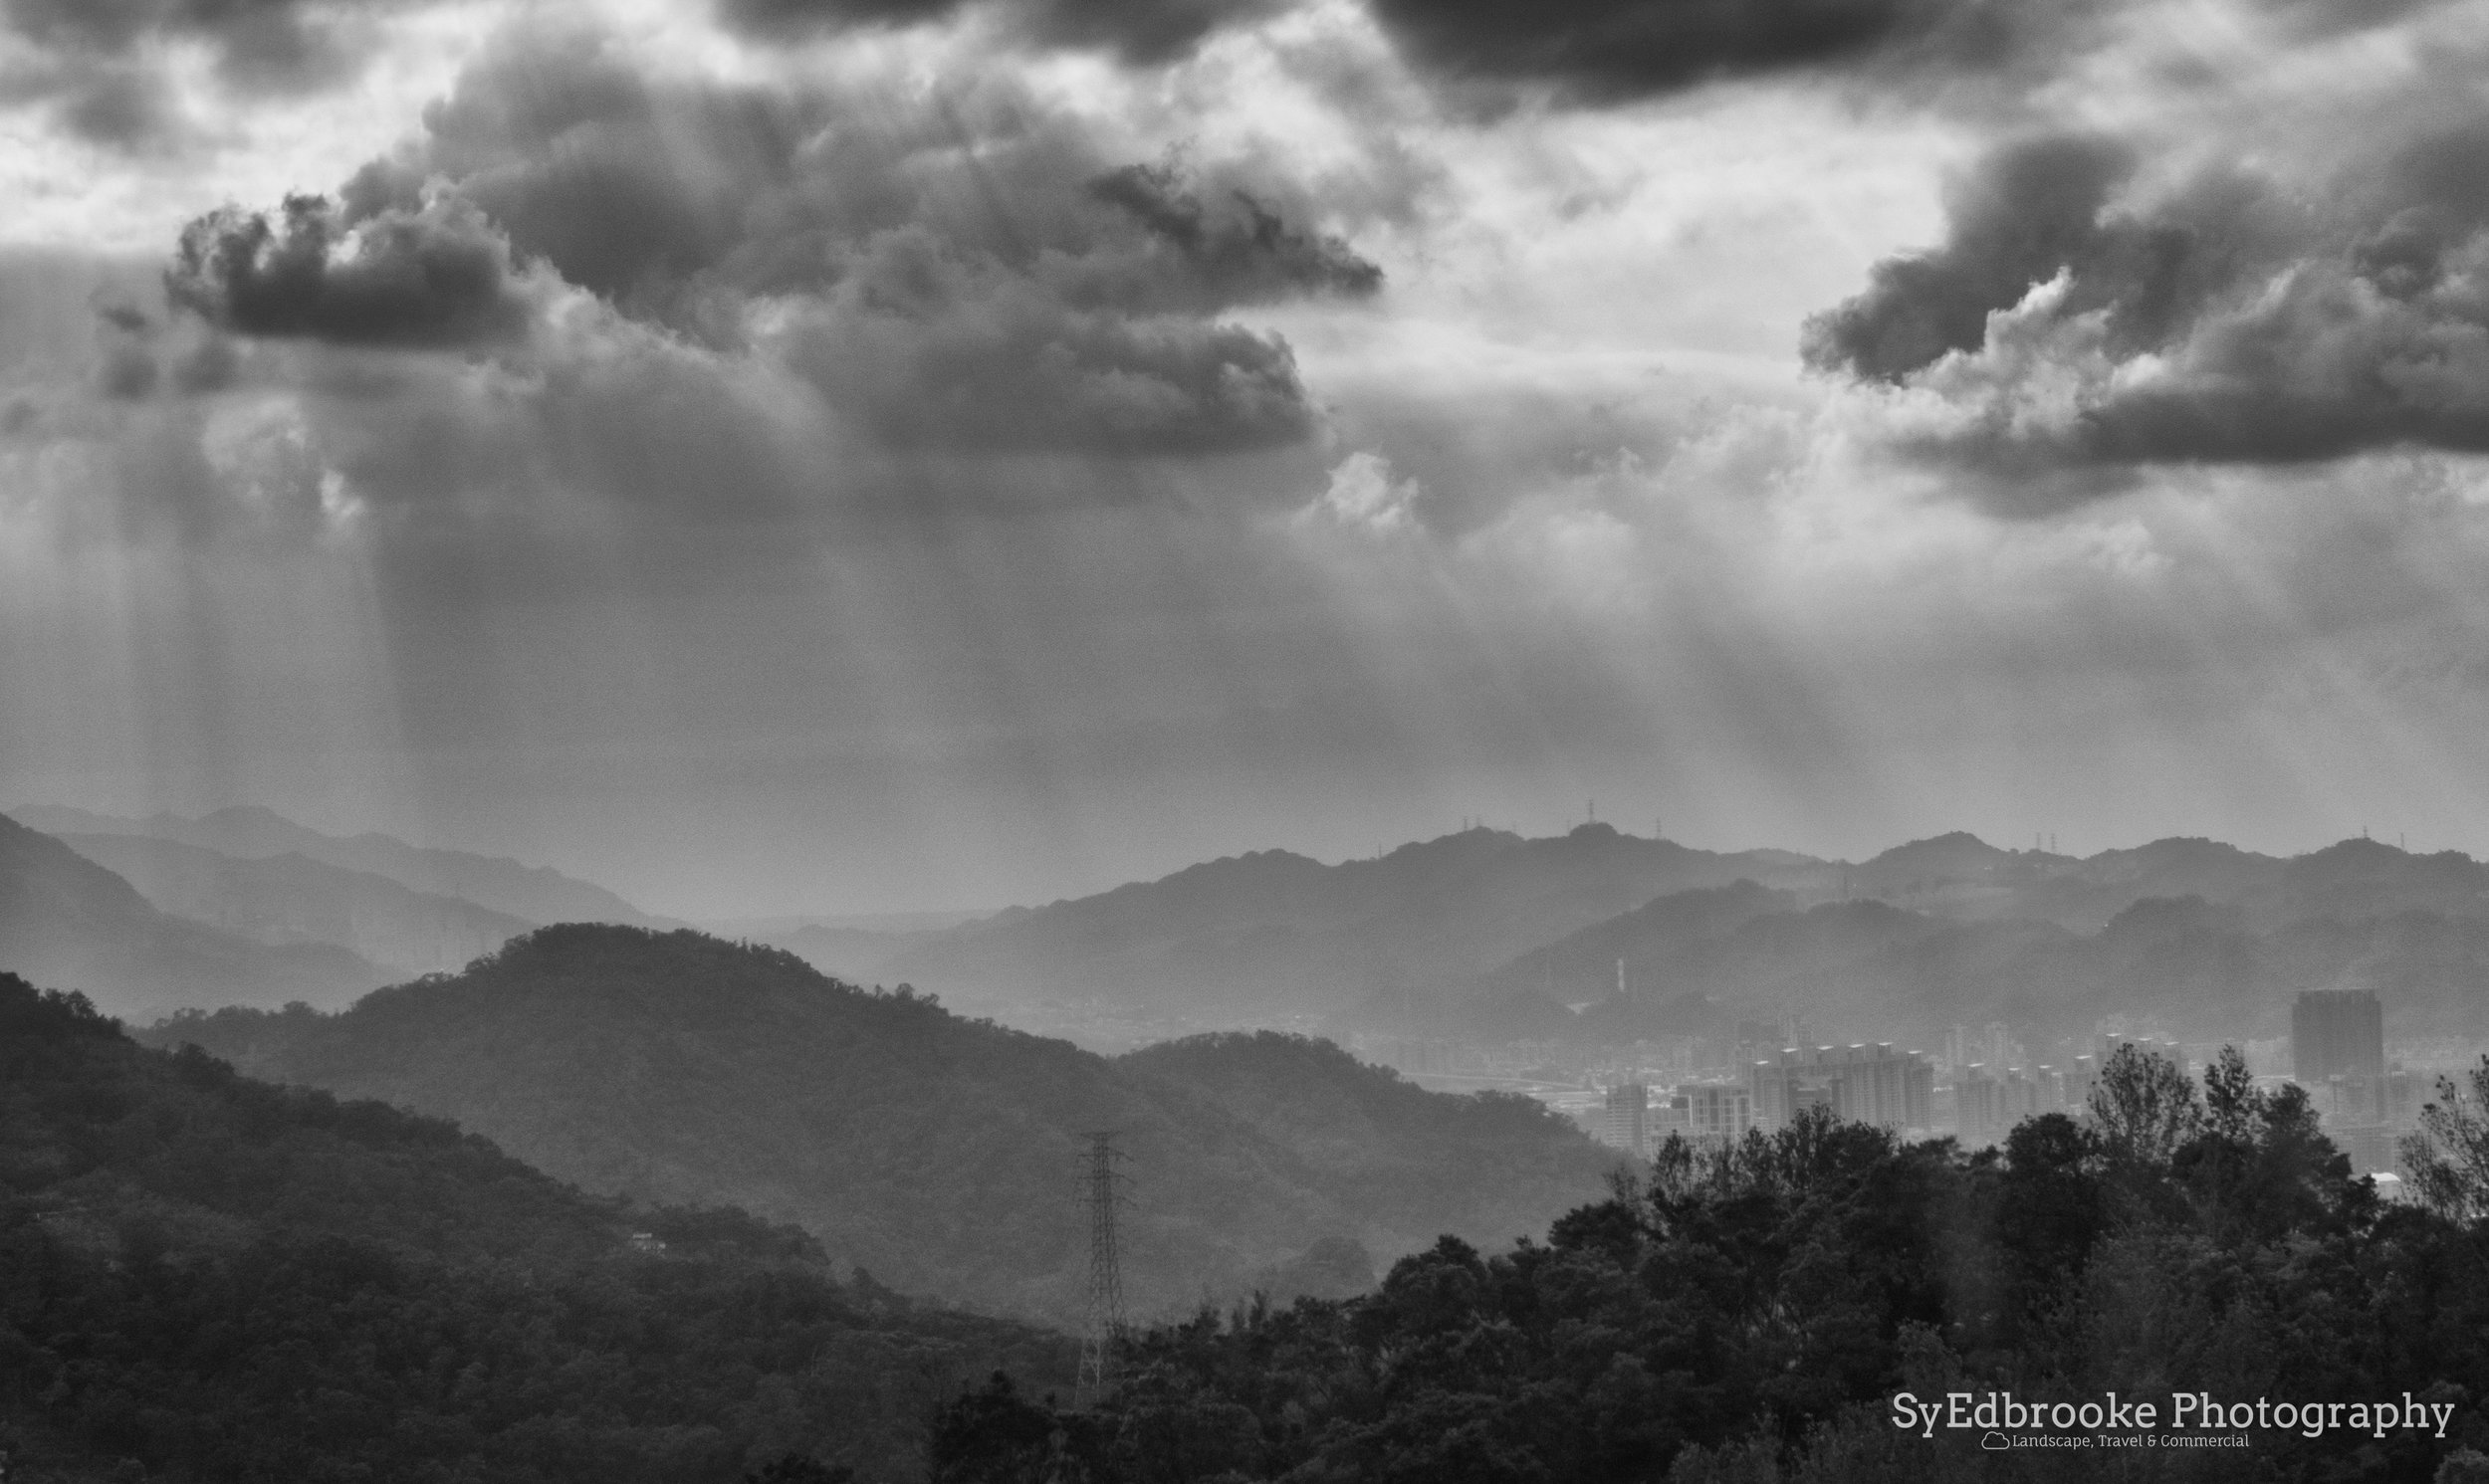 The dramatic light on the gondola back home. f11, ISO 200, 1/100, 80mm